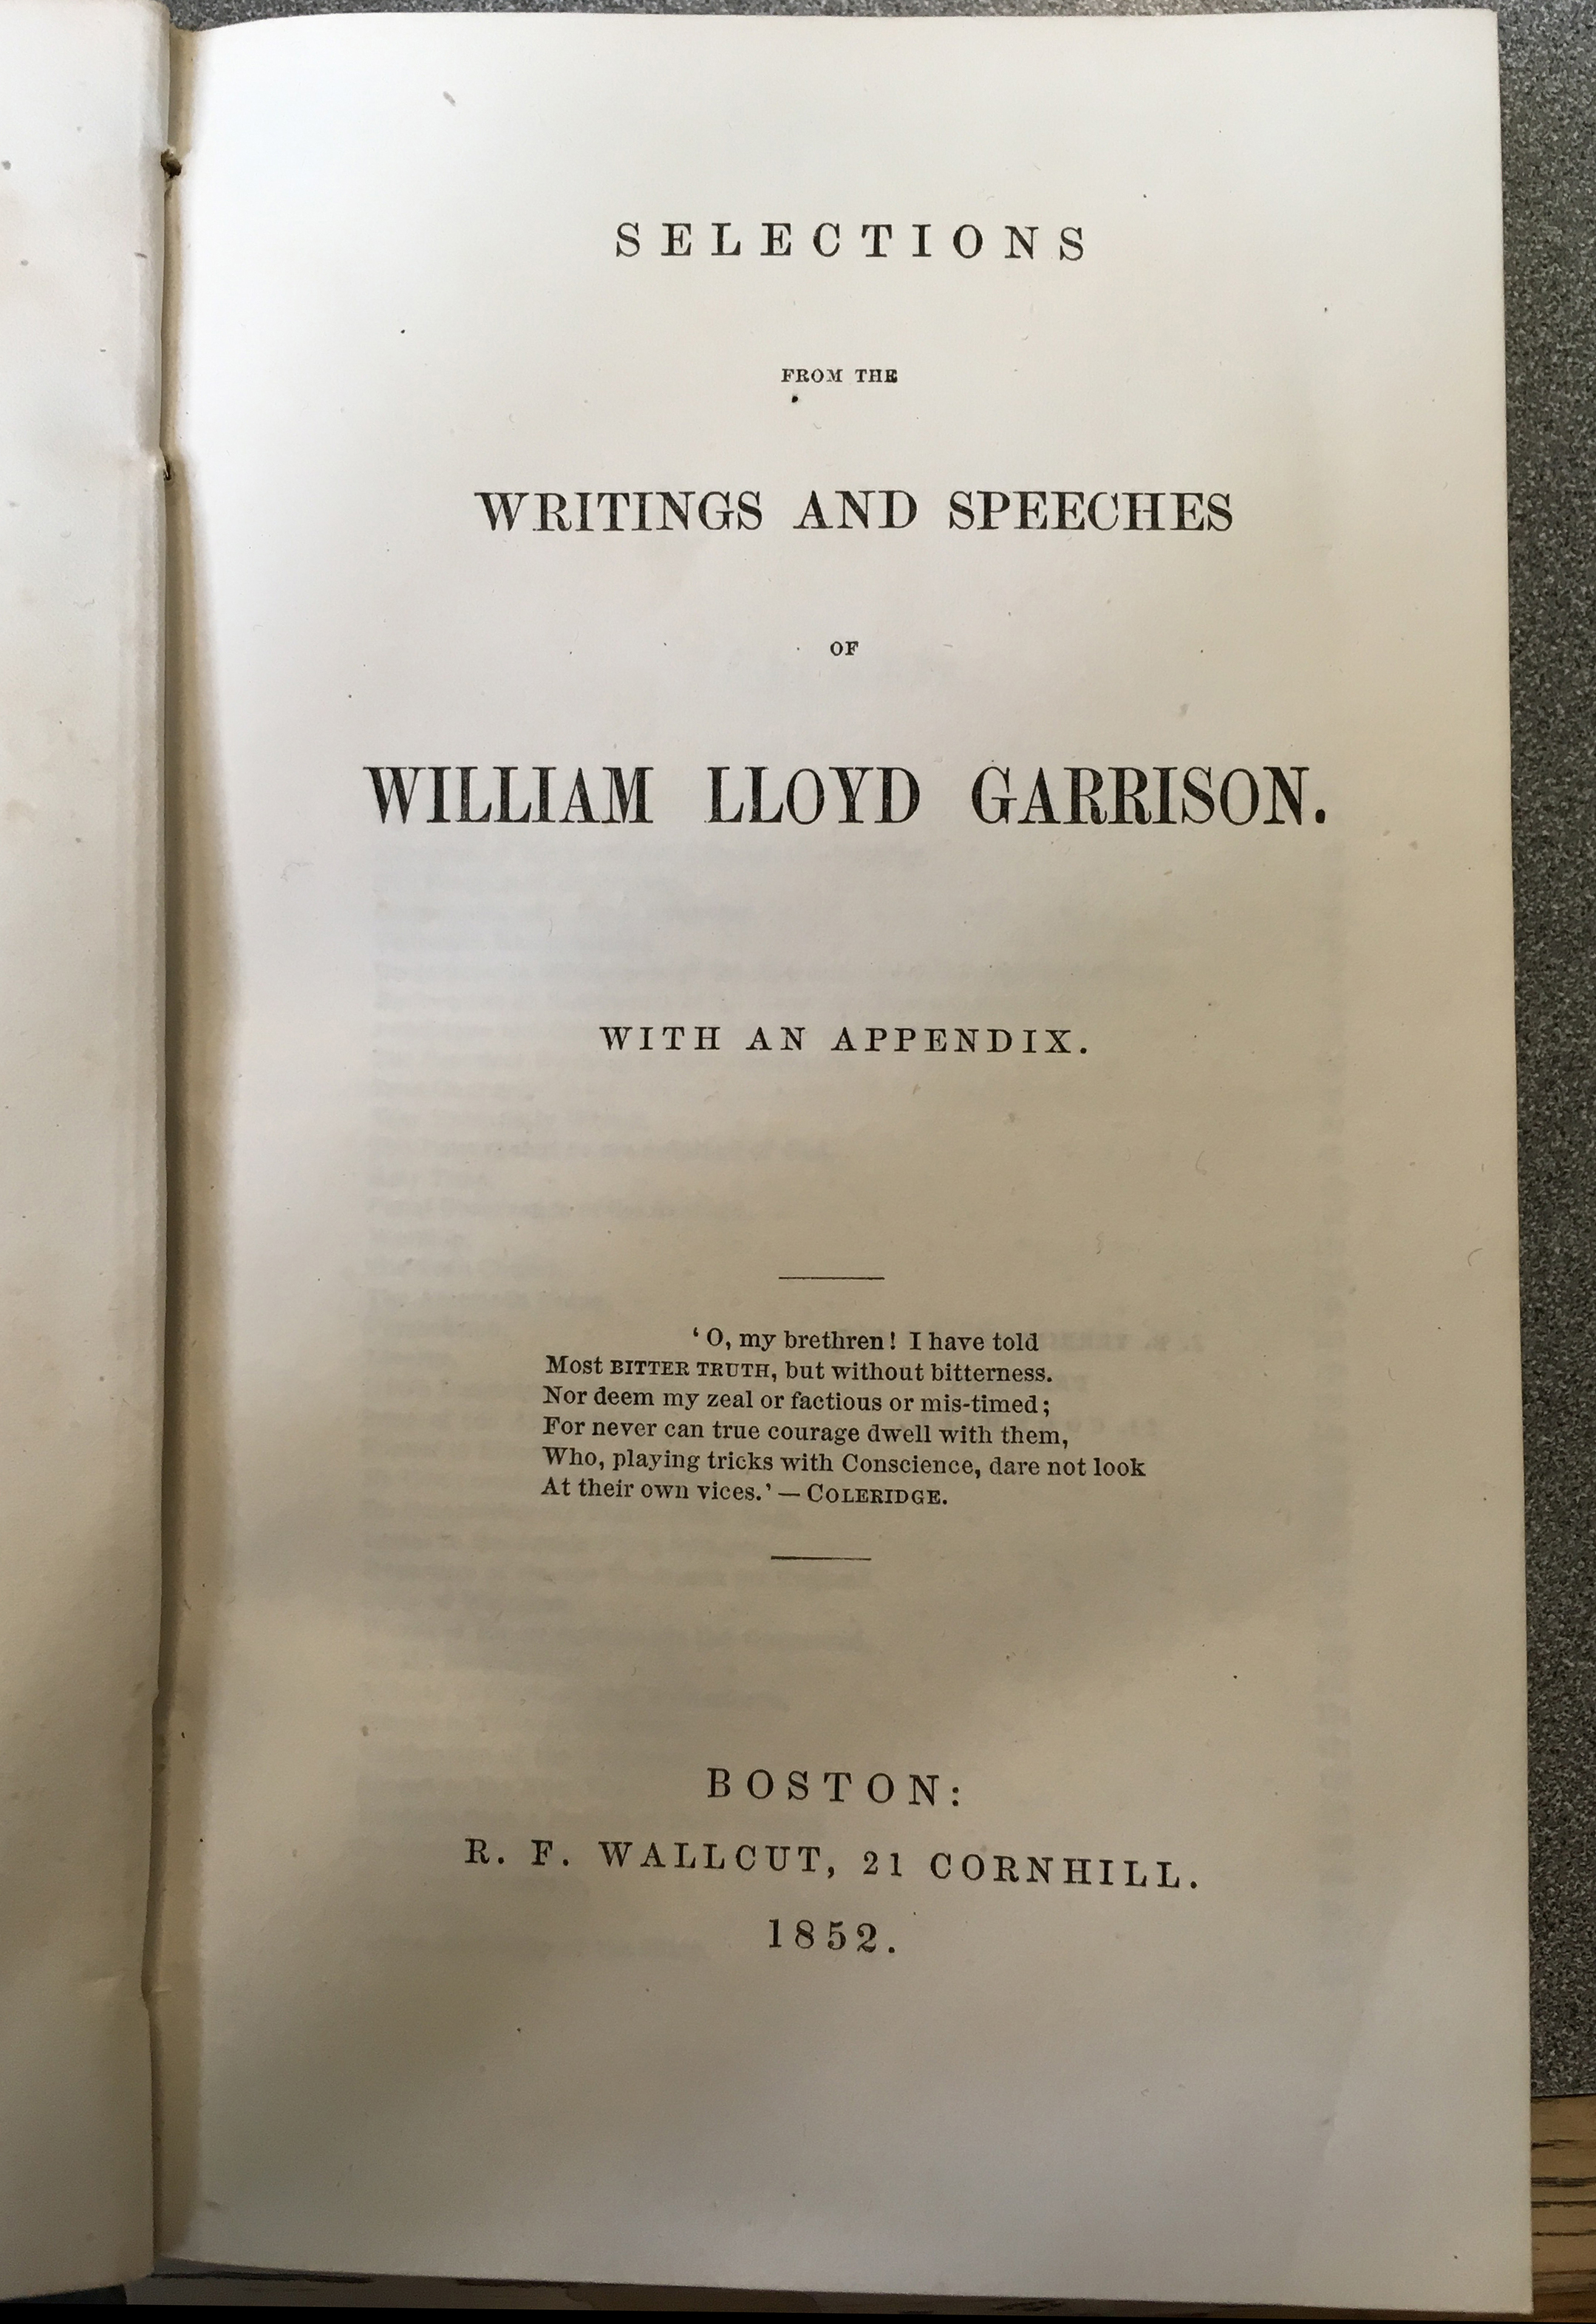 Selections from the Writings and Speeches of William Lloyd Garrison: With an Appendix